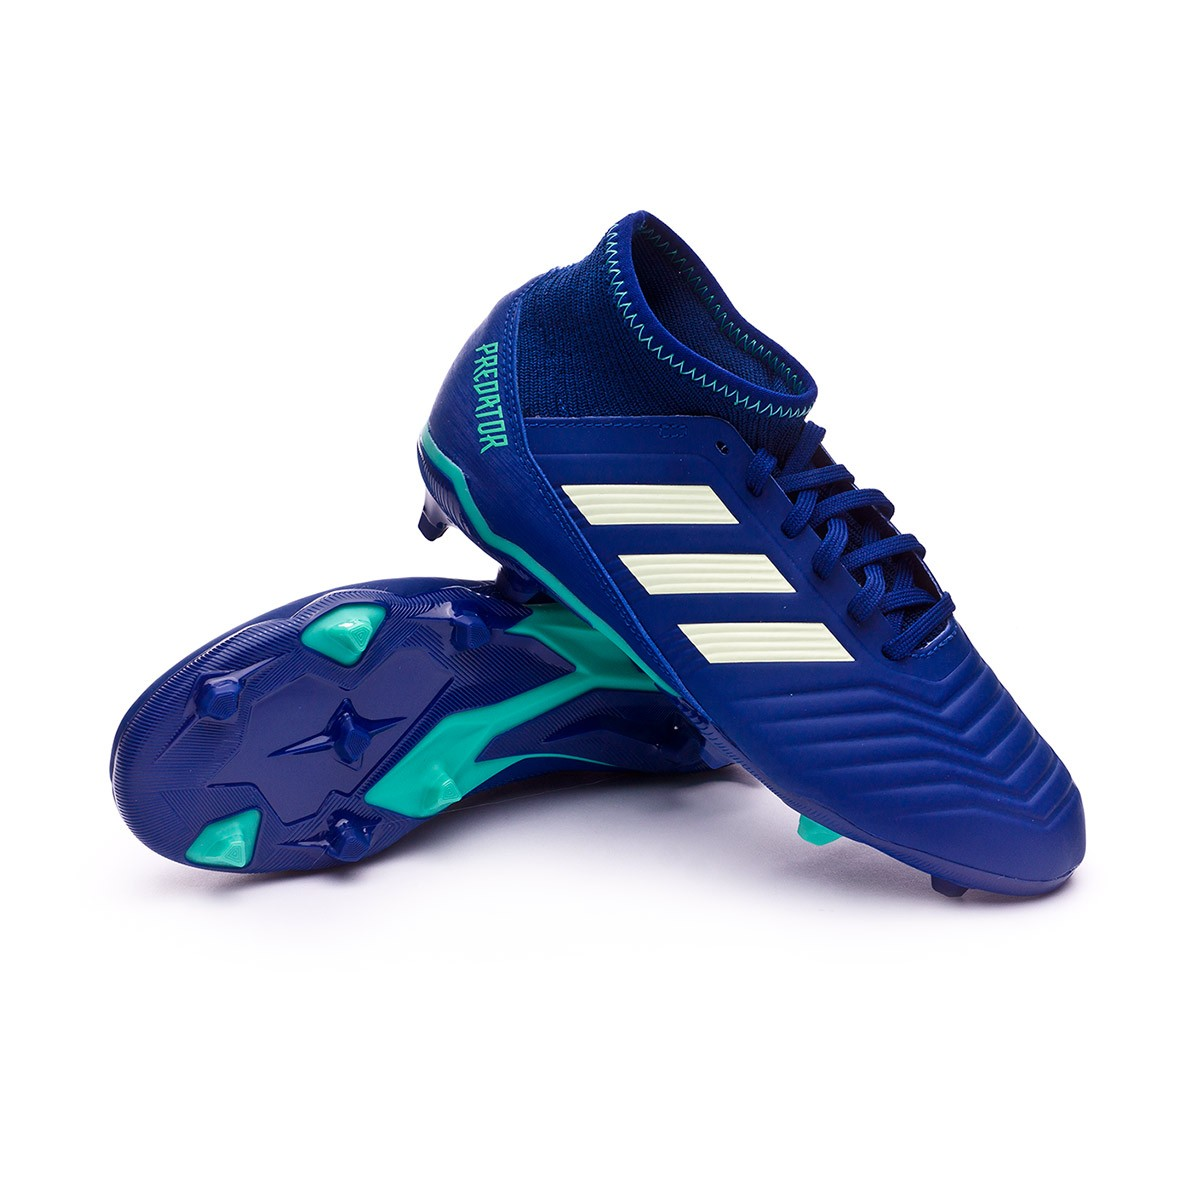 38151a12d adidas Kids Predator 18.3 FG Football Boots. Unity ink-Aero green-Hi-res ...